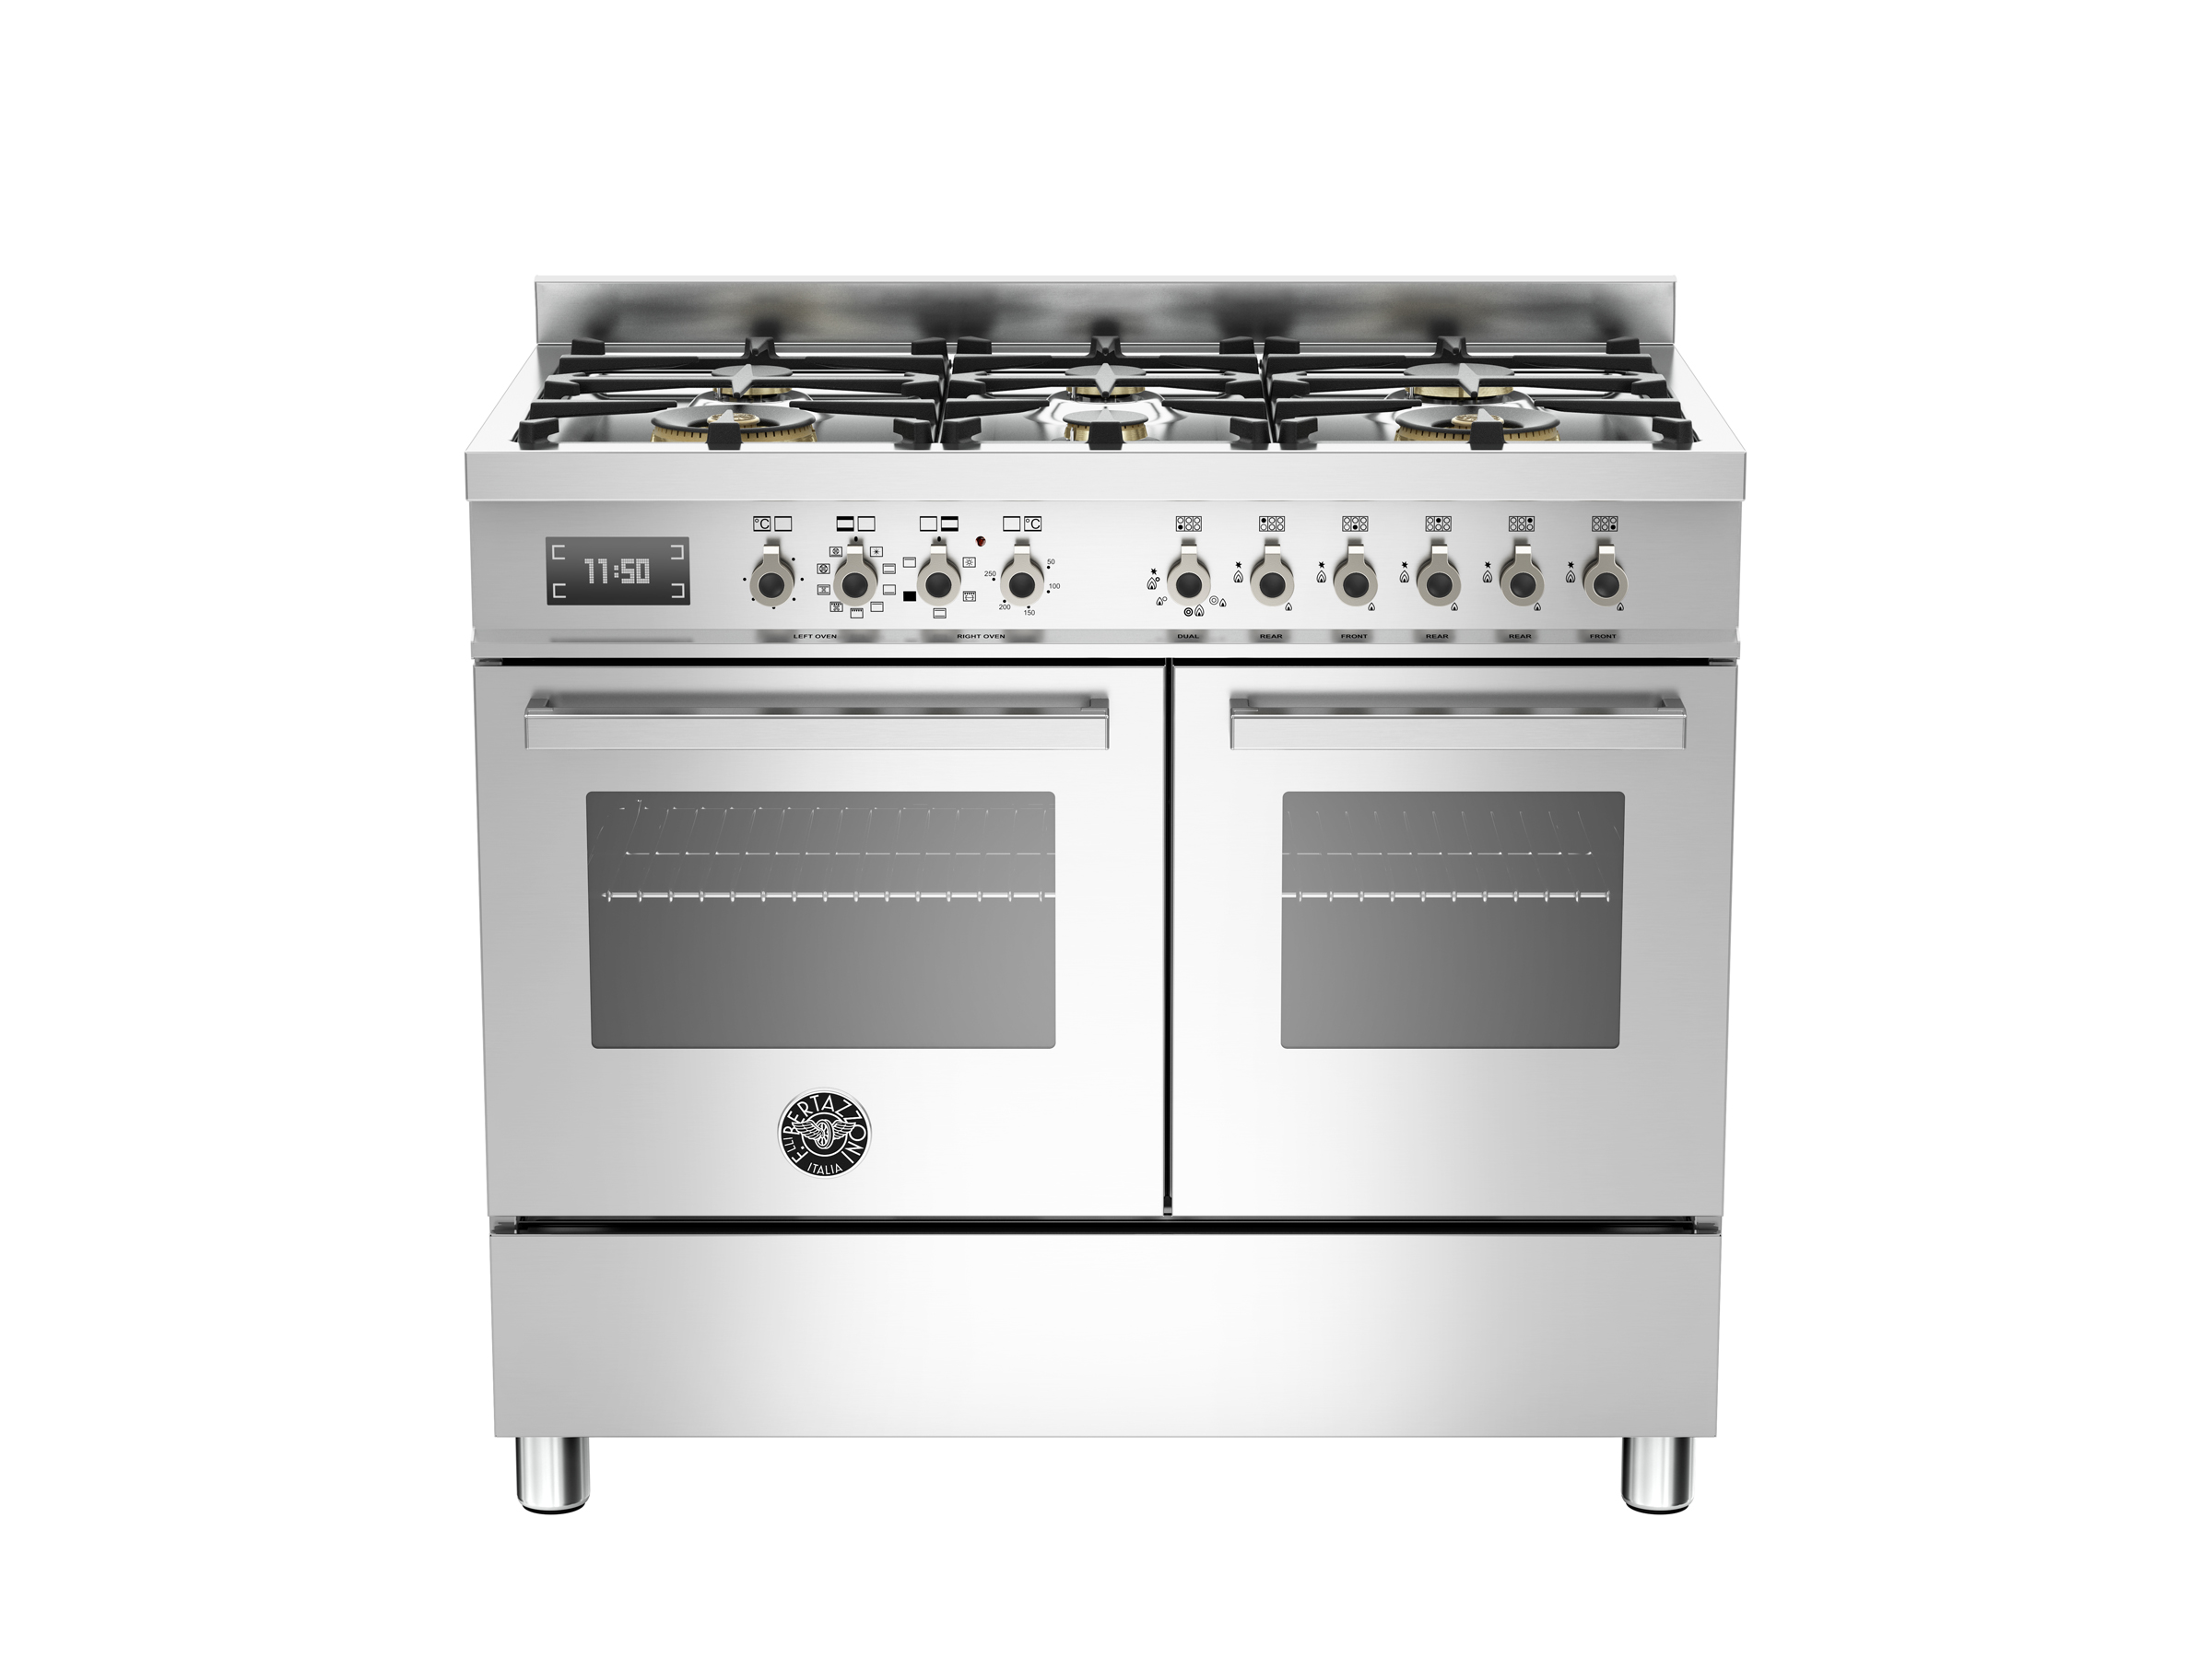 100 cm 6-burner electric double oven | Bertazzoni - Stainless